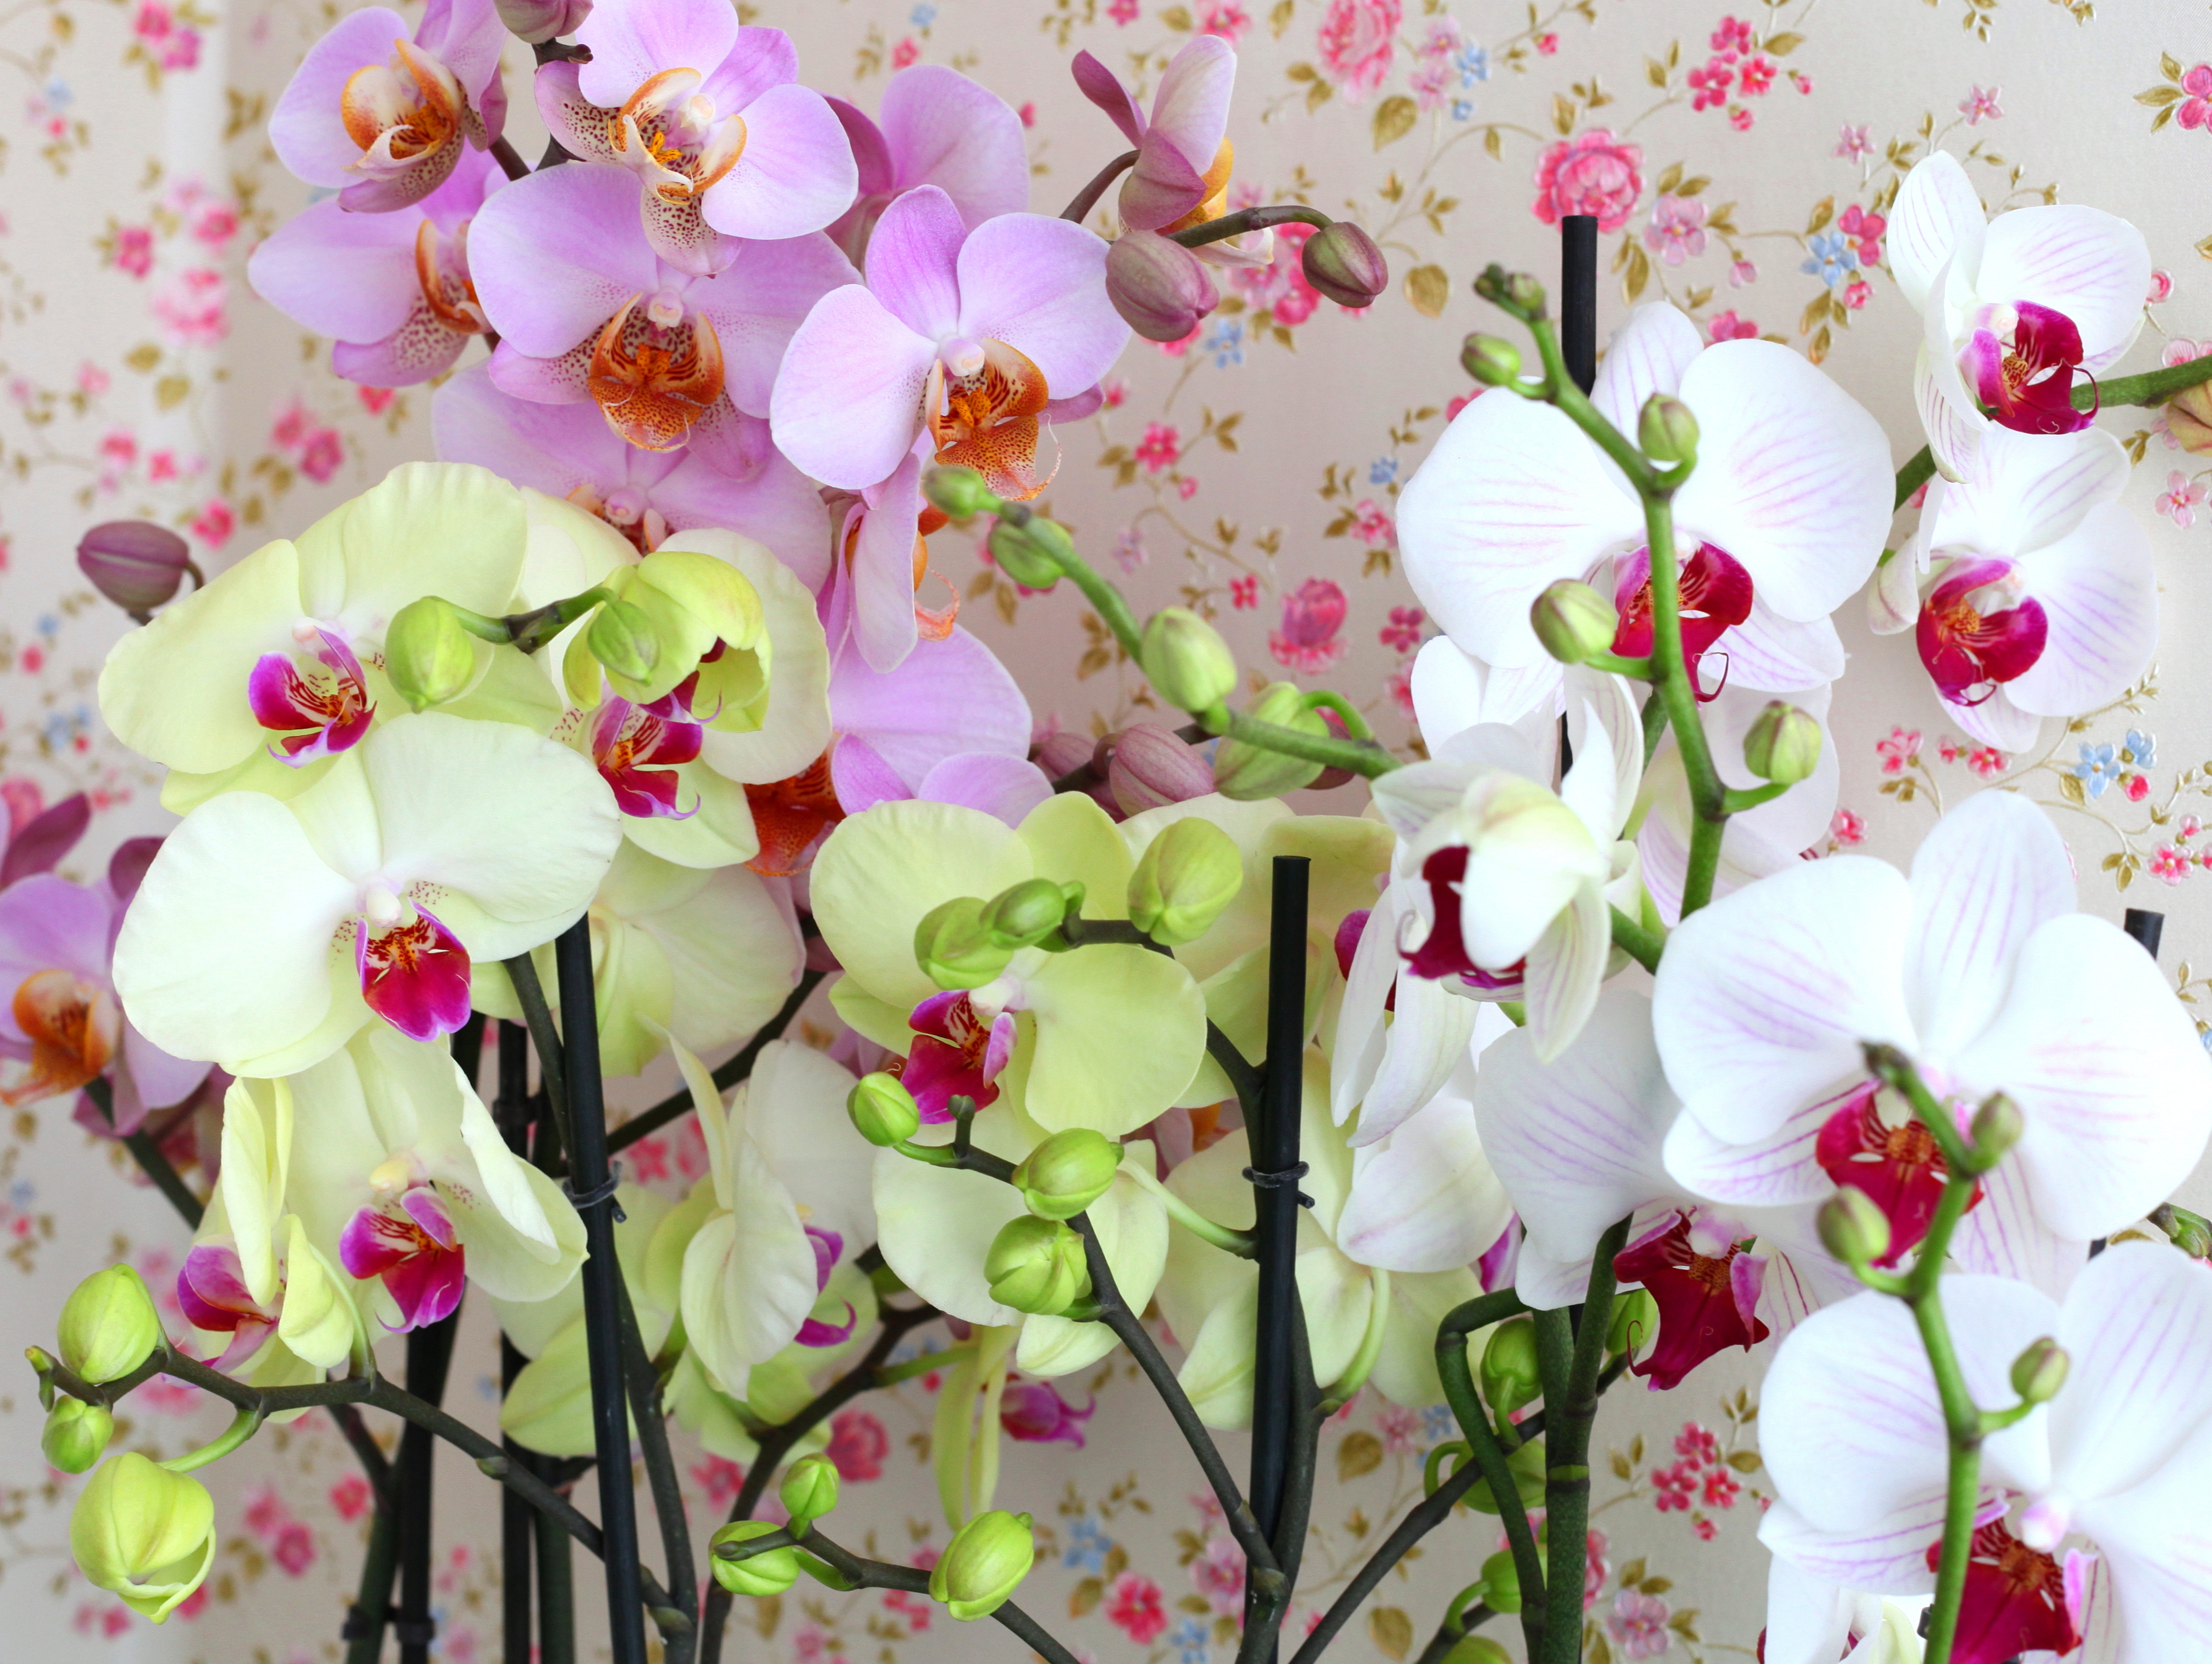 pink, yellow and white orchids, photo 2